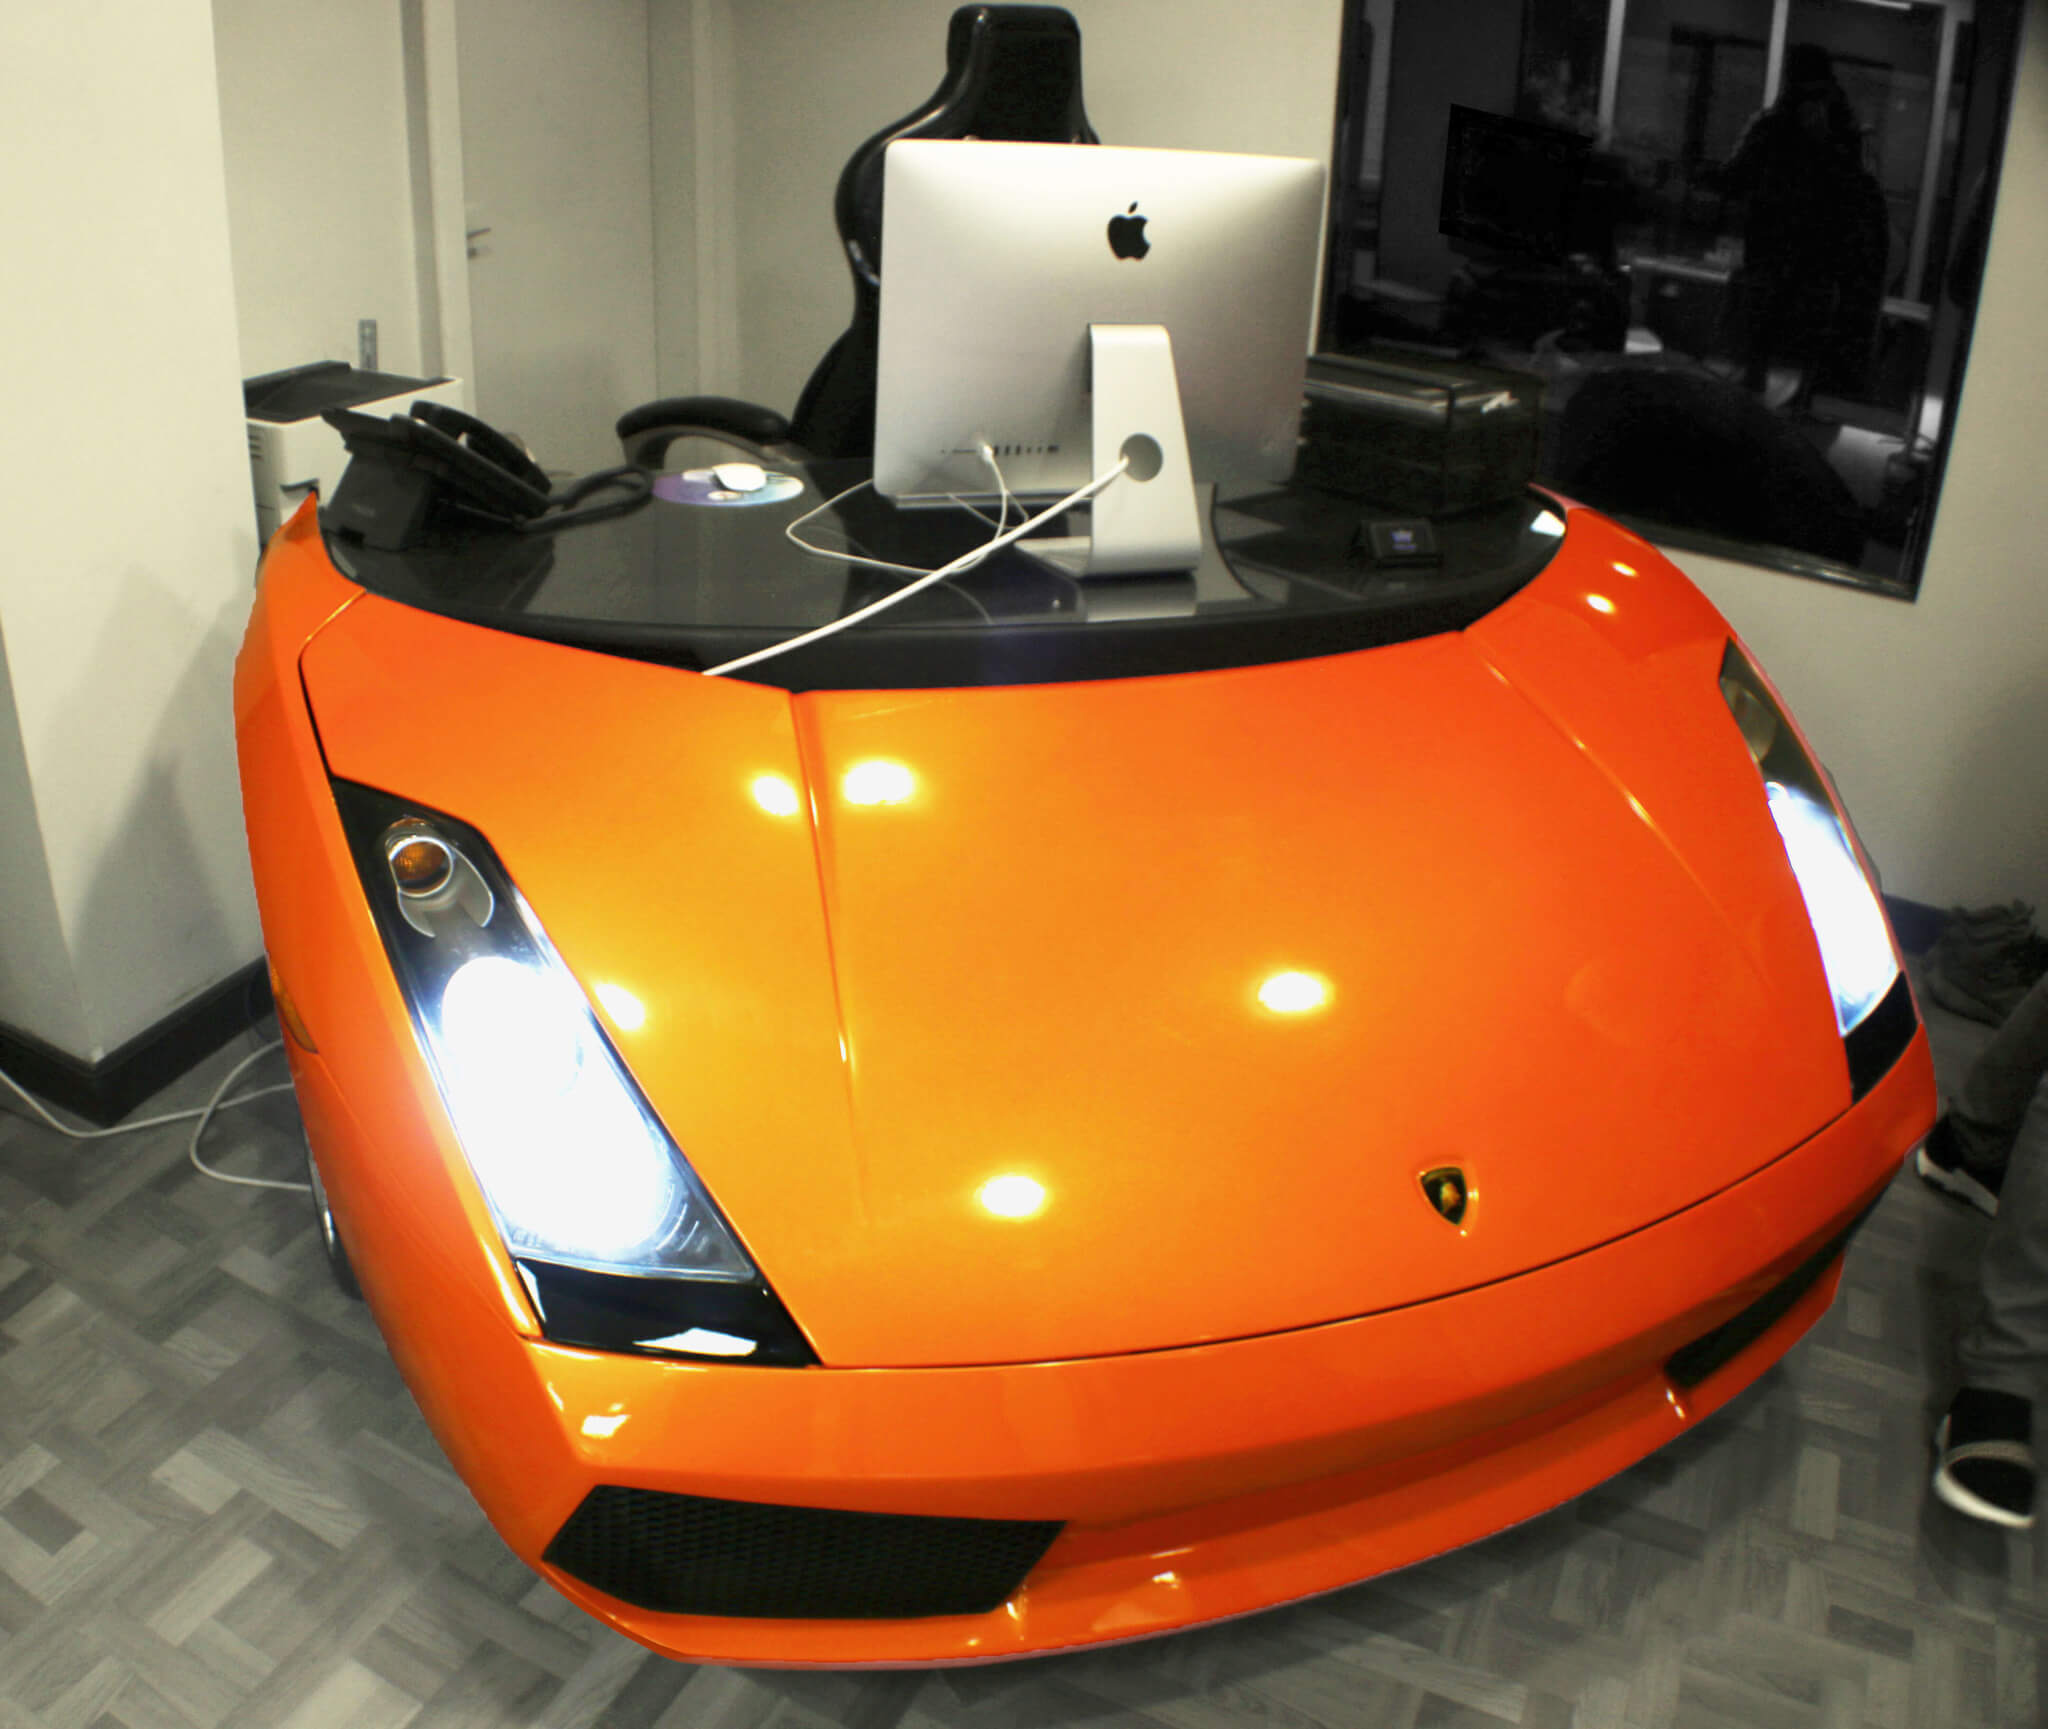 http://www.enkahnz.co.uk/wp-content/uploads/2019/07/nav-lambo-desk1.jpg